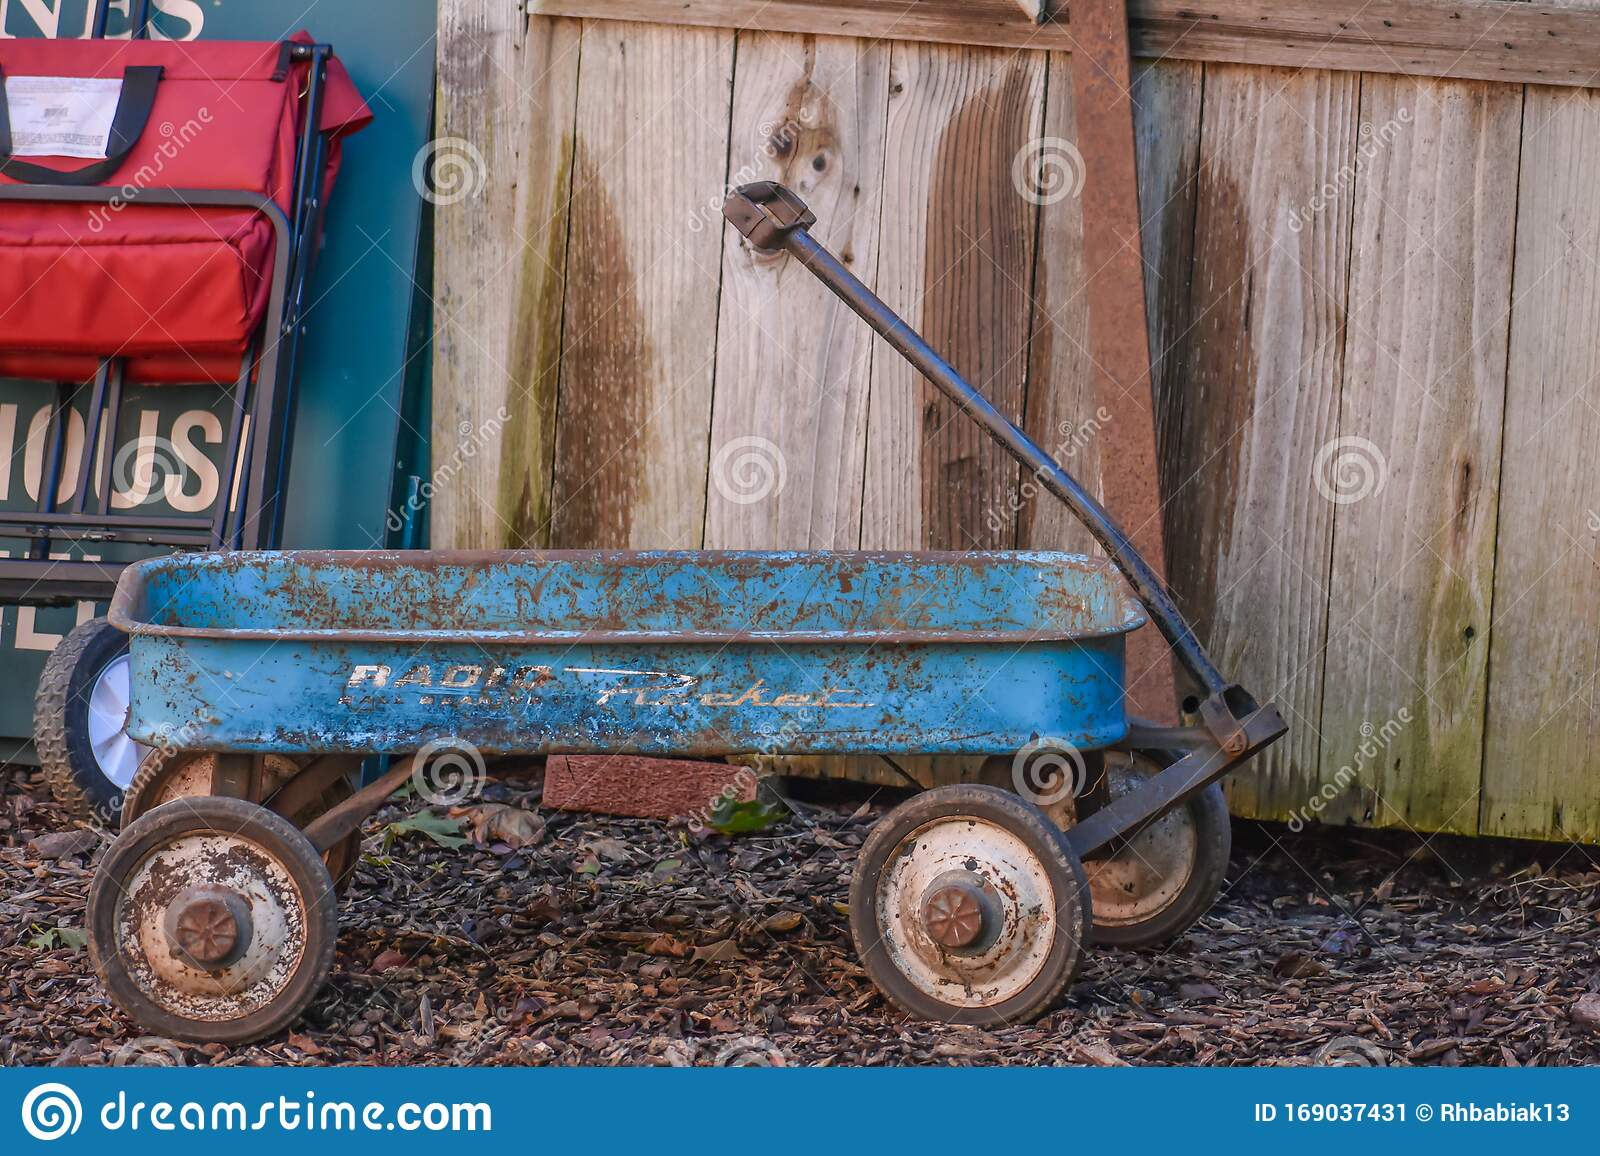 154 Radio Flyer Photos Free Royalty Free Stock Photos From Dreamstime